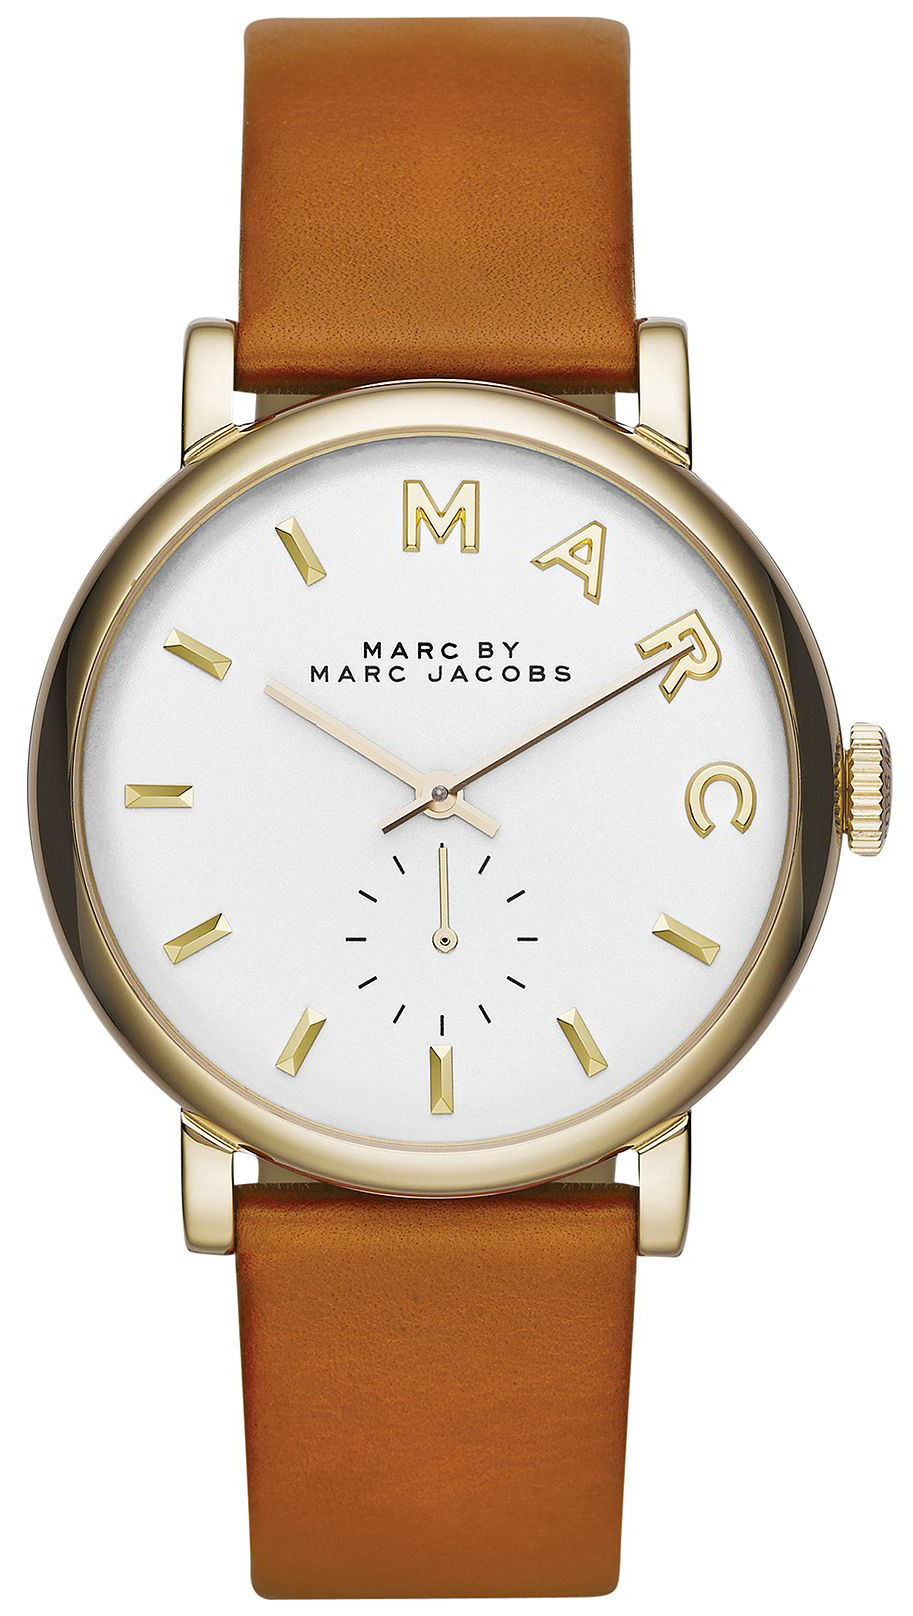 Marc by Marc Jacobs 99999 Dameklokke MBM1316 Hvit/Lær Ø36 mm - Marc by Marc Jacobs